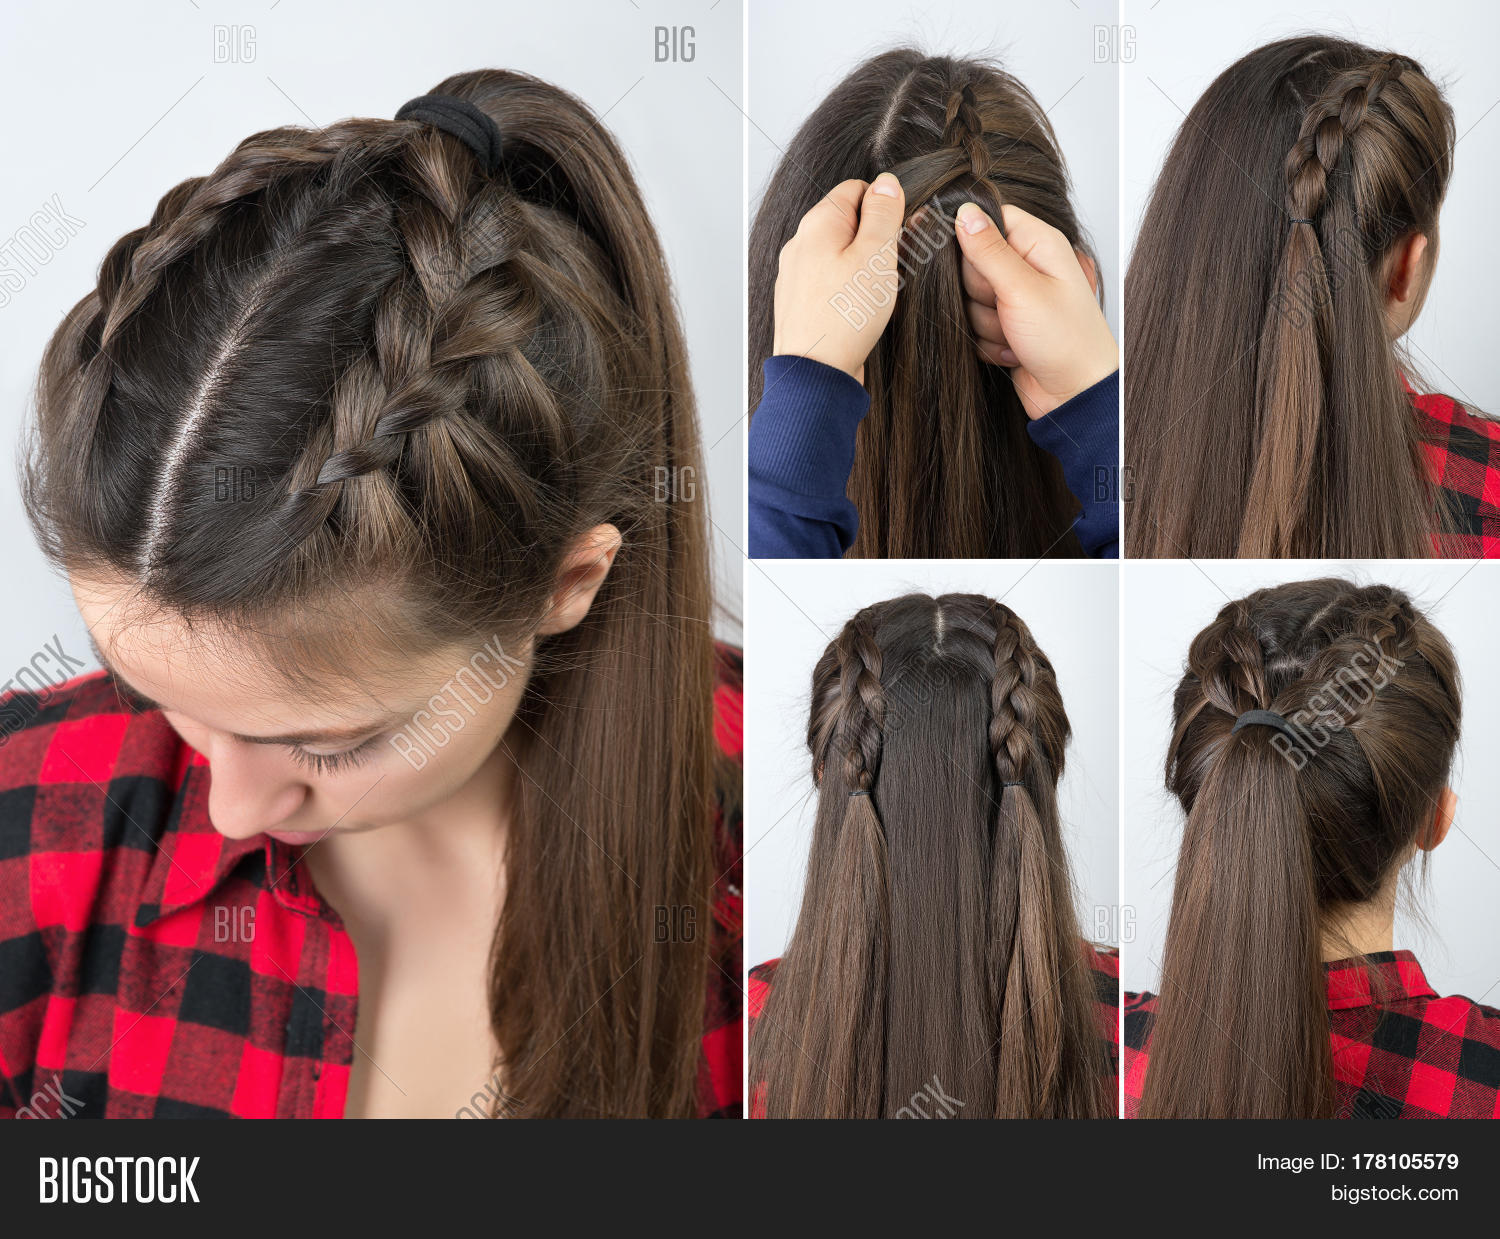 Simple Braided Image Photo Free Trial Bigstock